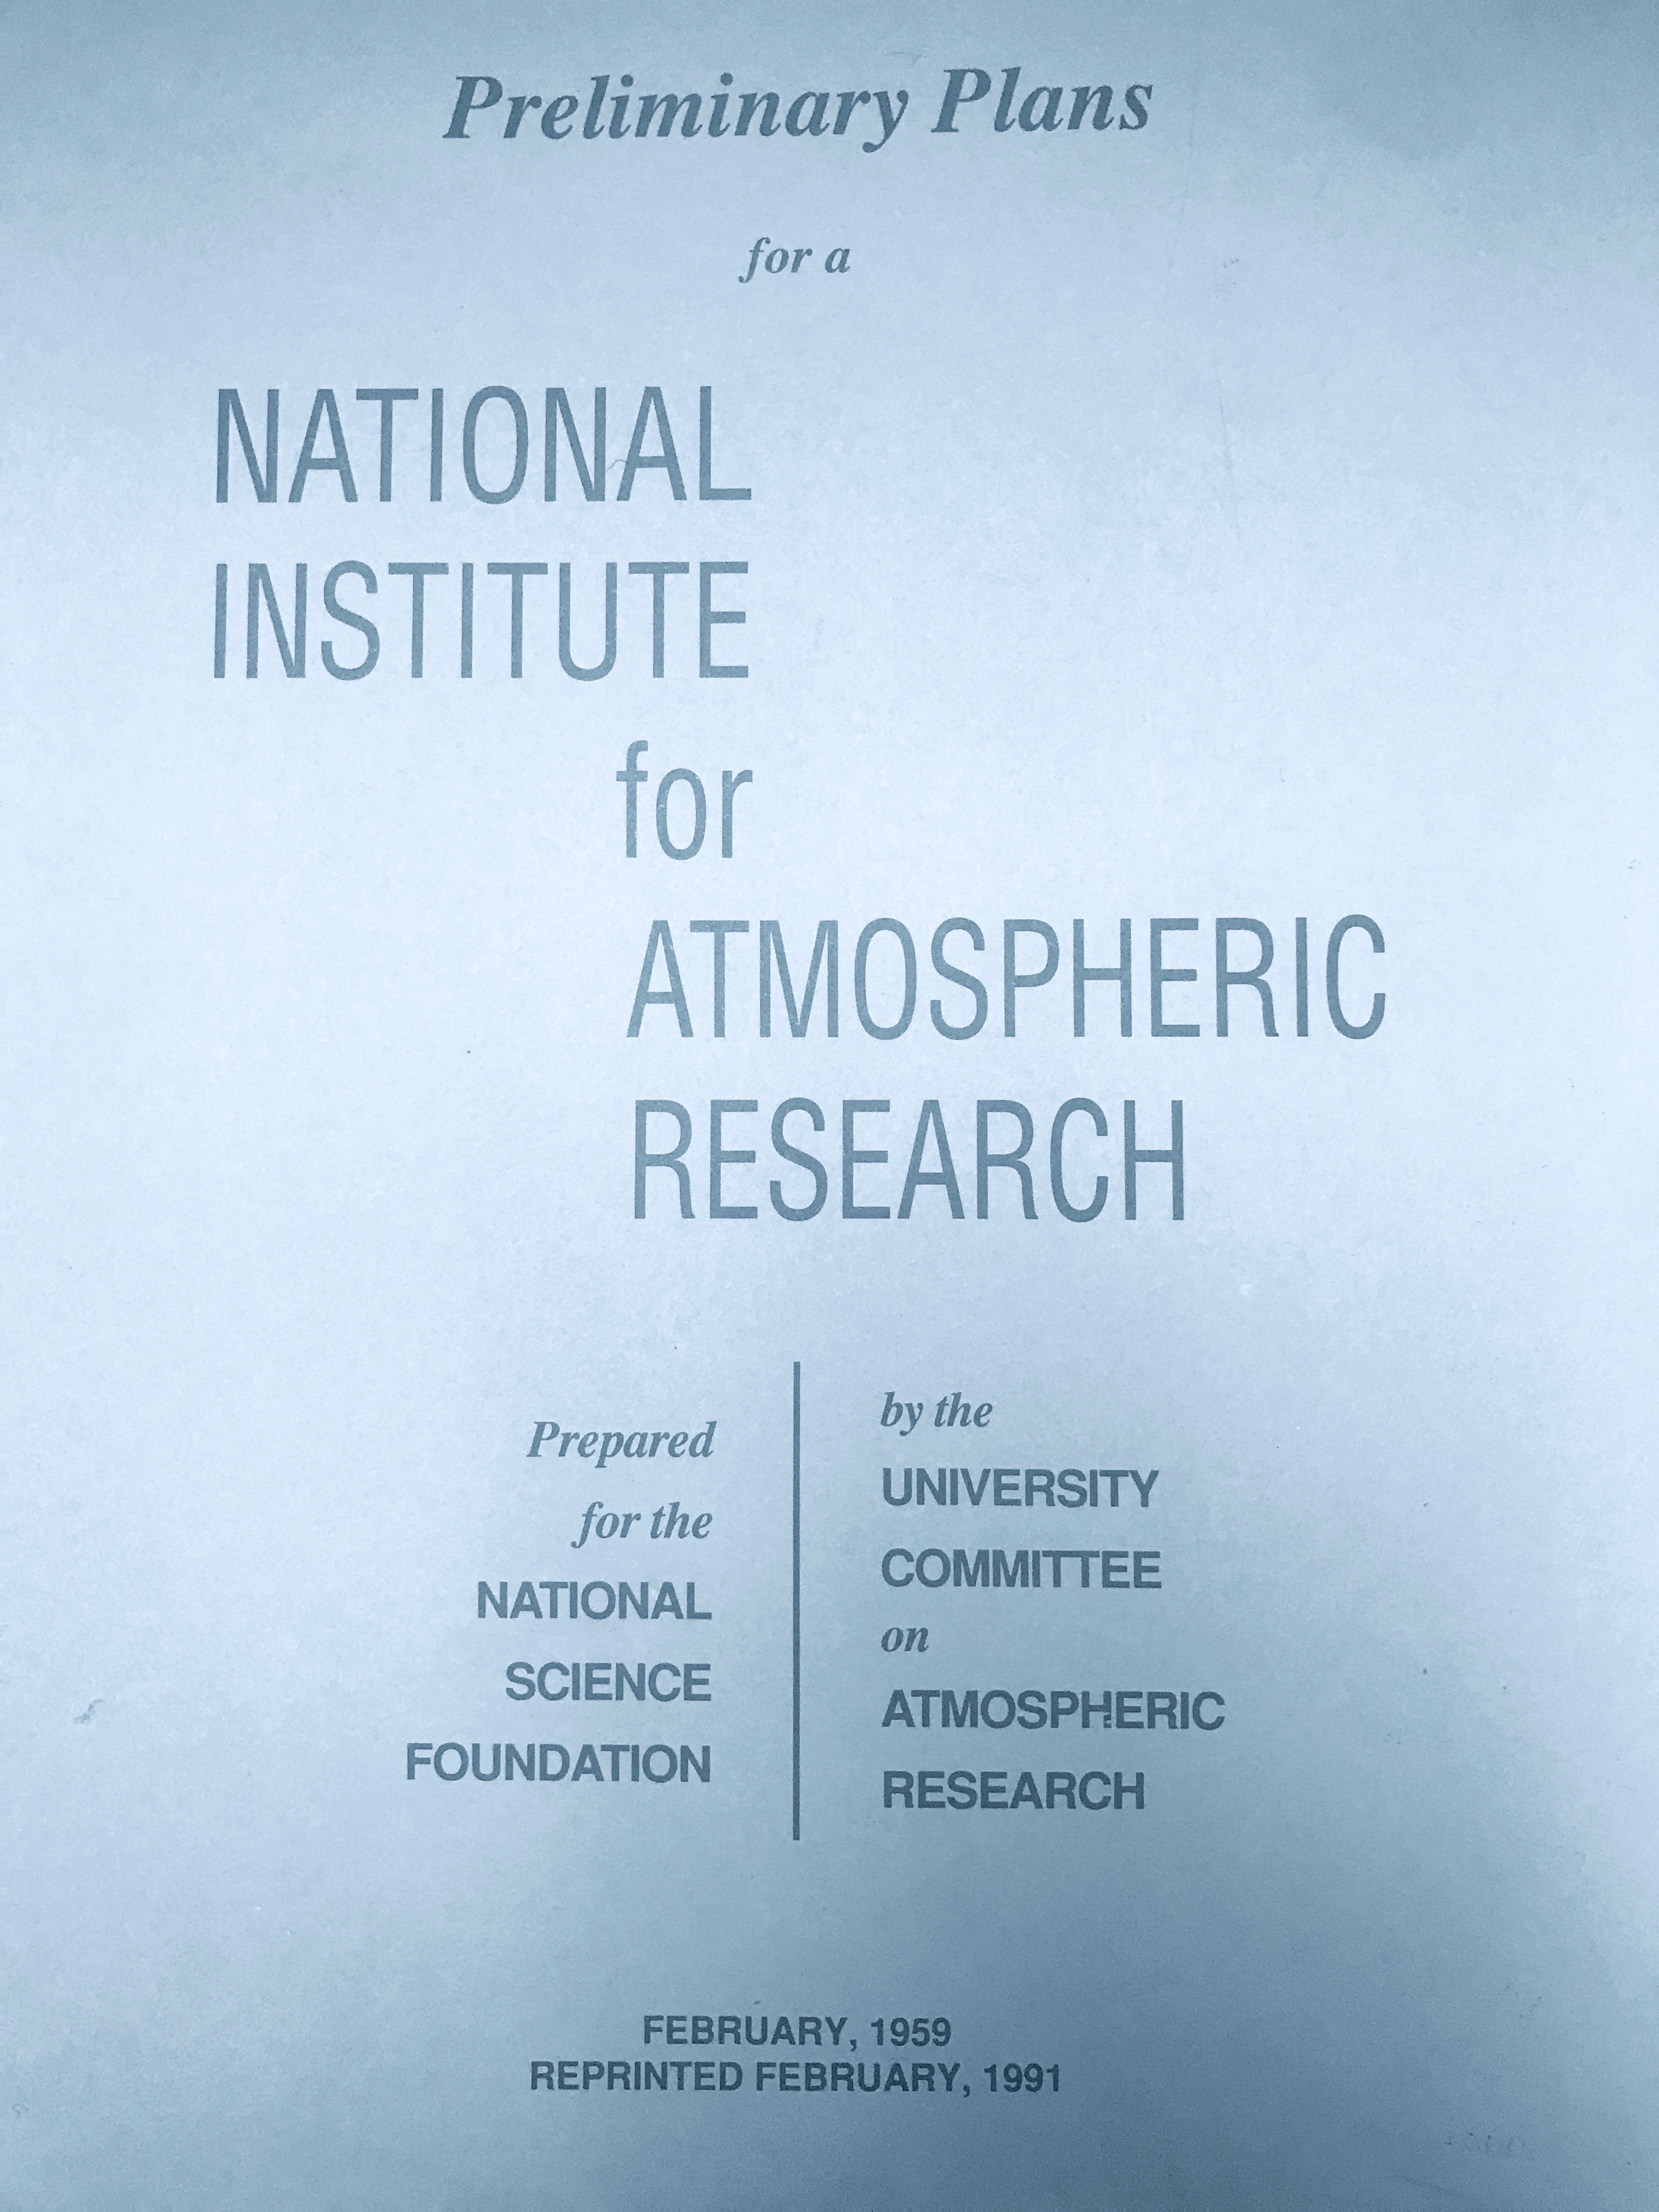 Preliminary plans for a National Institute for Atmospheric Research